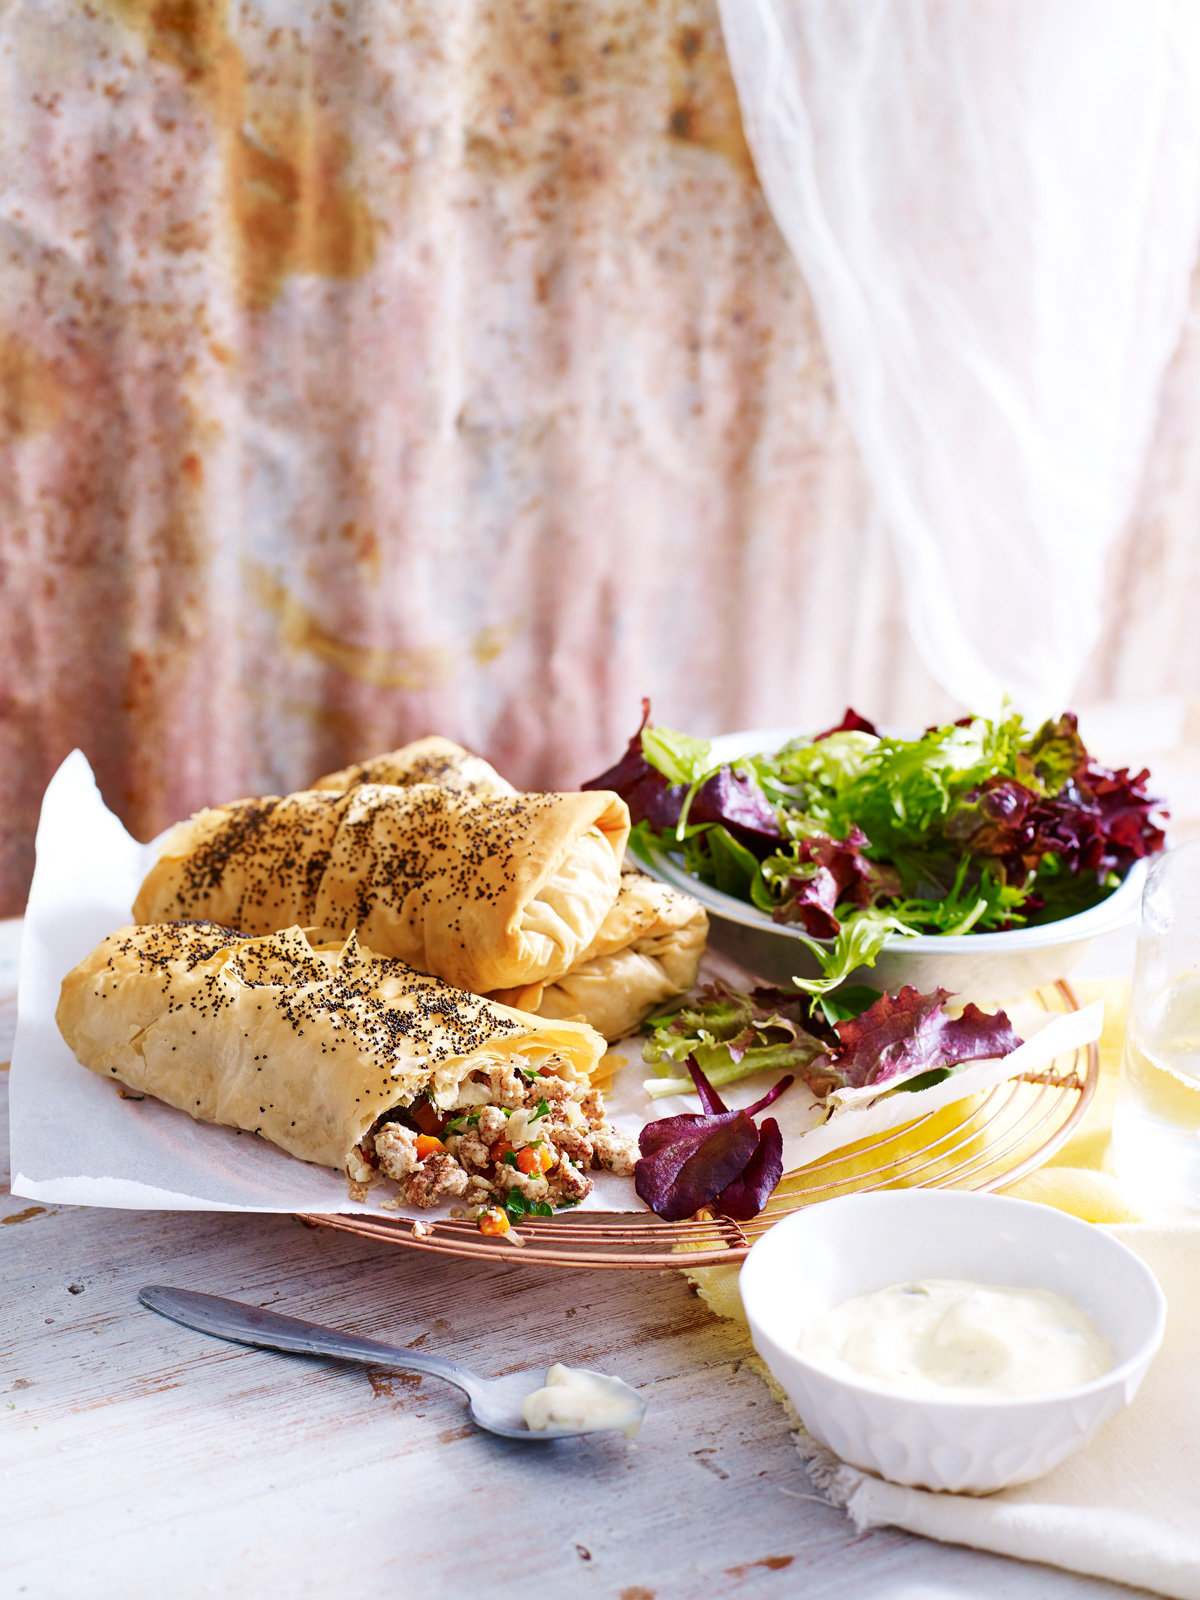 Andy-Lewis-food-photographer-©-photography_Lilydale_Spring_Cinnamon-Filo-Parcels-With-Jalapeno-Aioli-&-Green-Salad.jpg